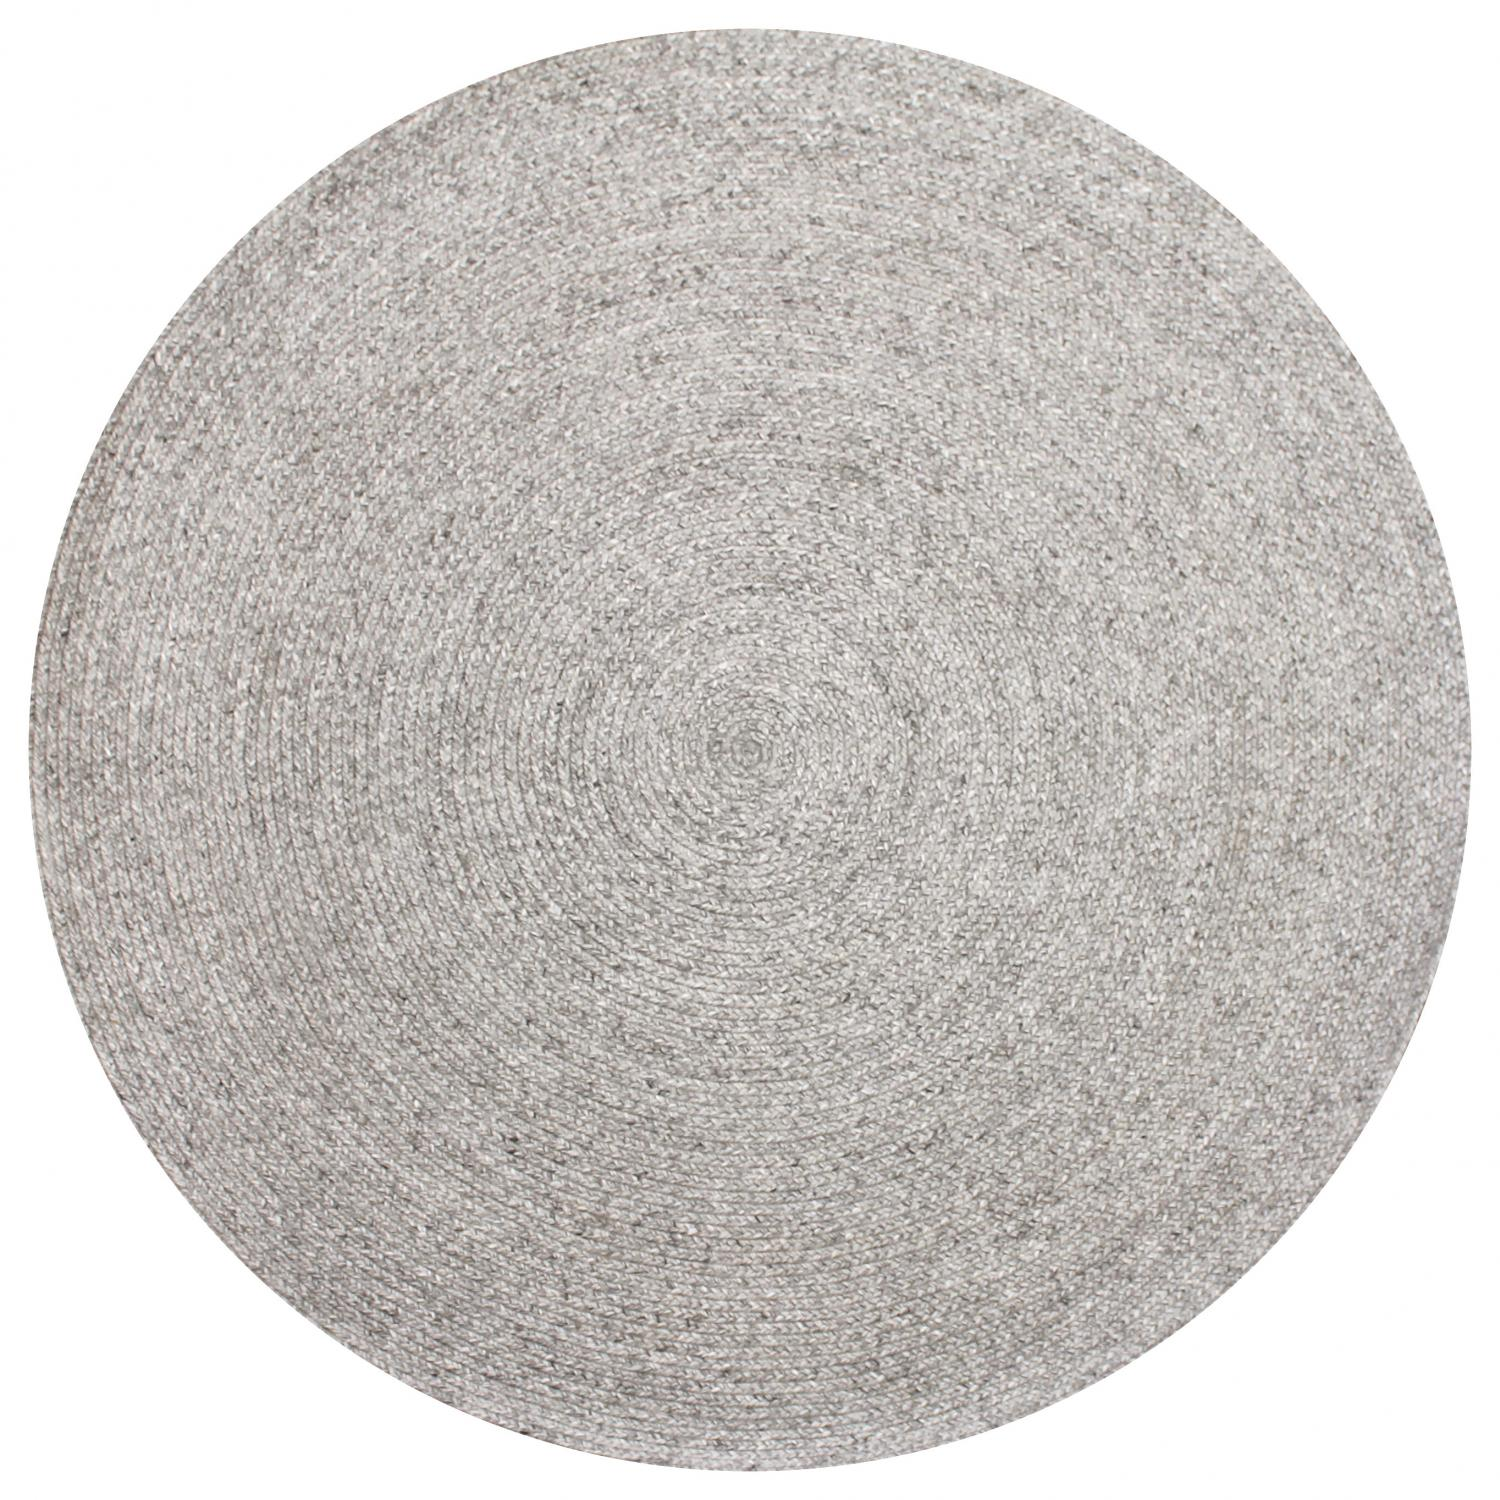 hand-woven-wool-and-art-silk-shaped-rugs-circle-perth-Stans-silver